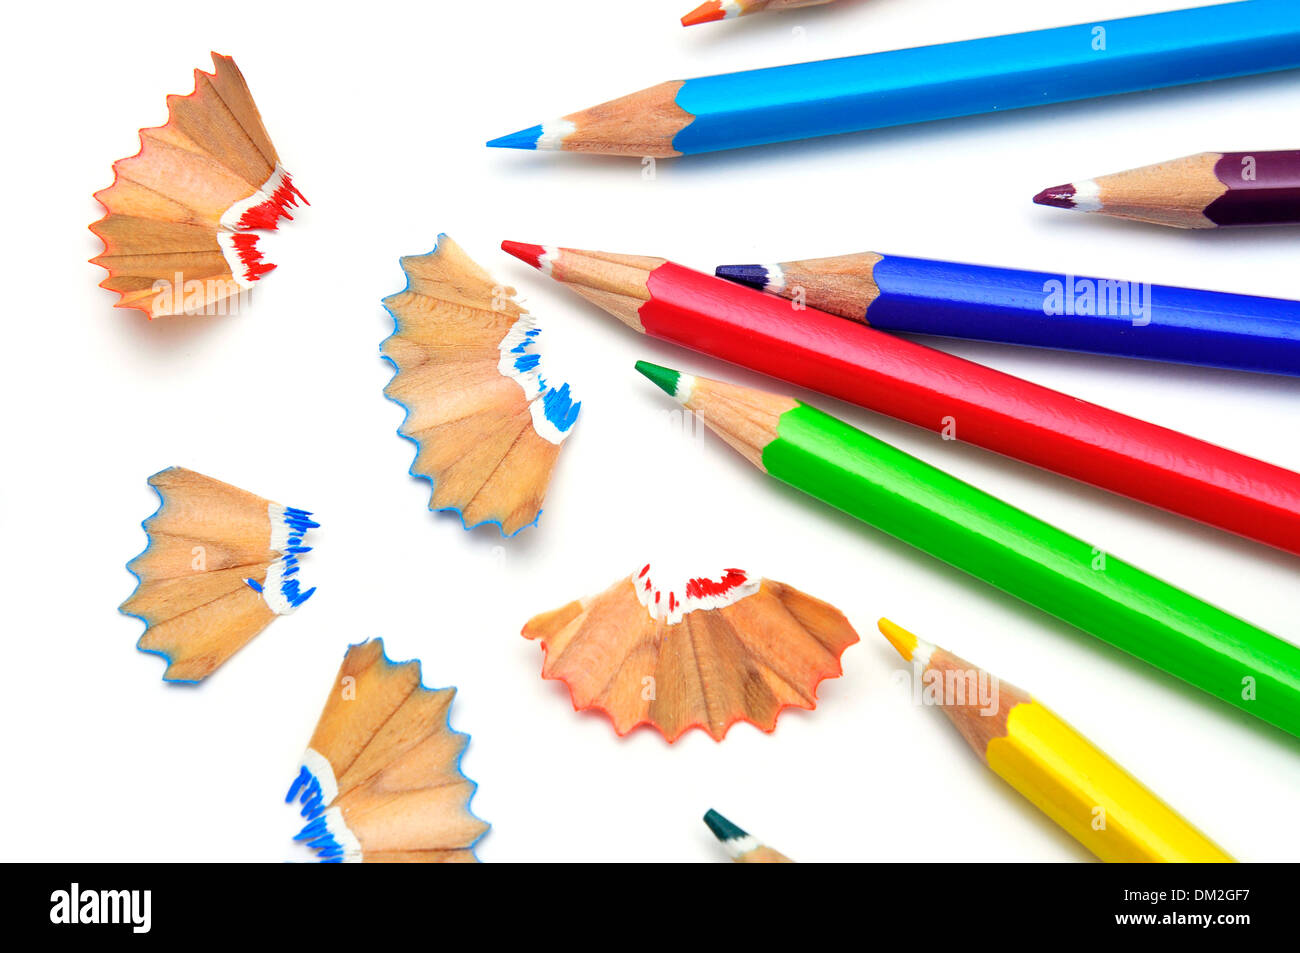 some colored pencils of different colors and pencil shavings on a white background - Stock Image